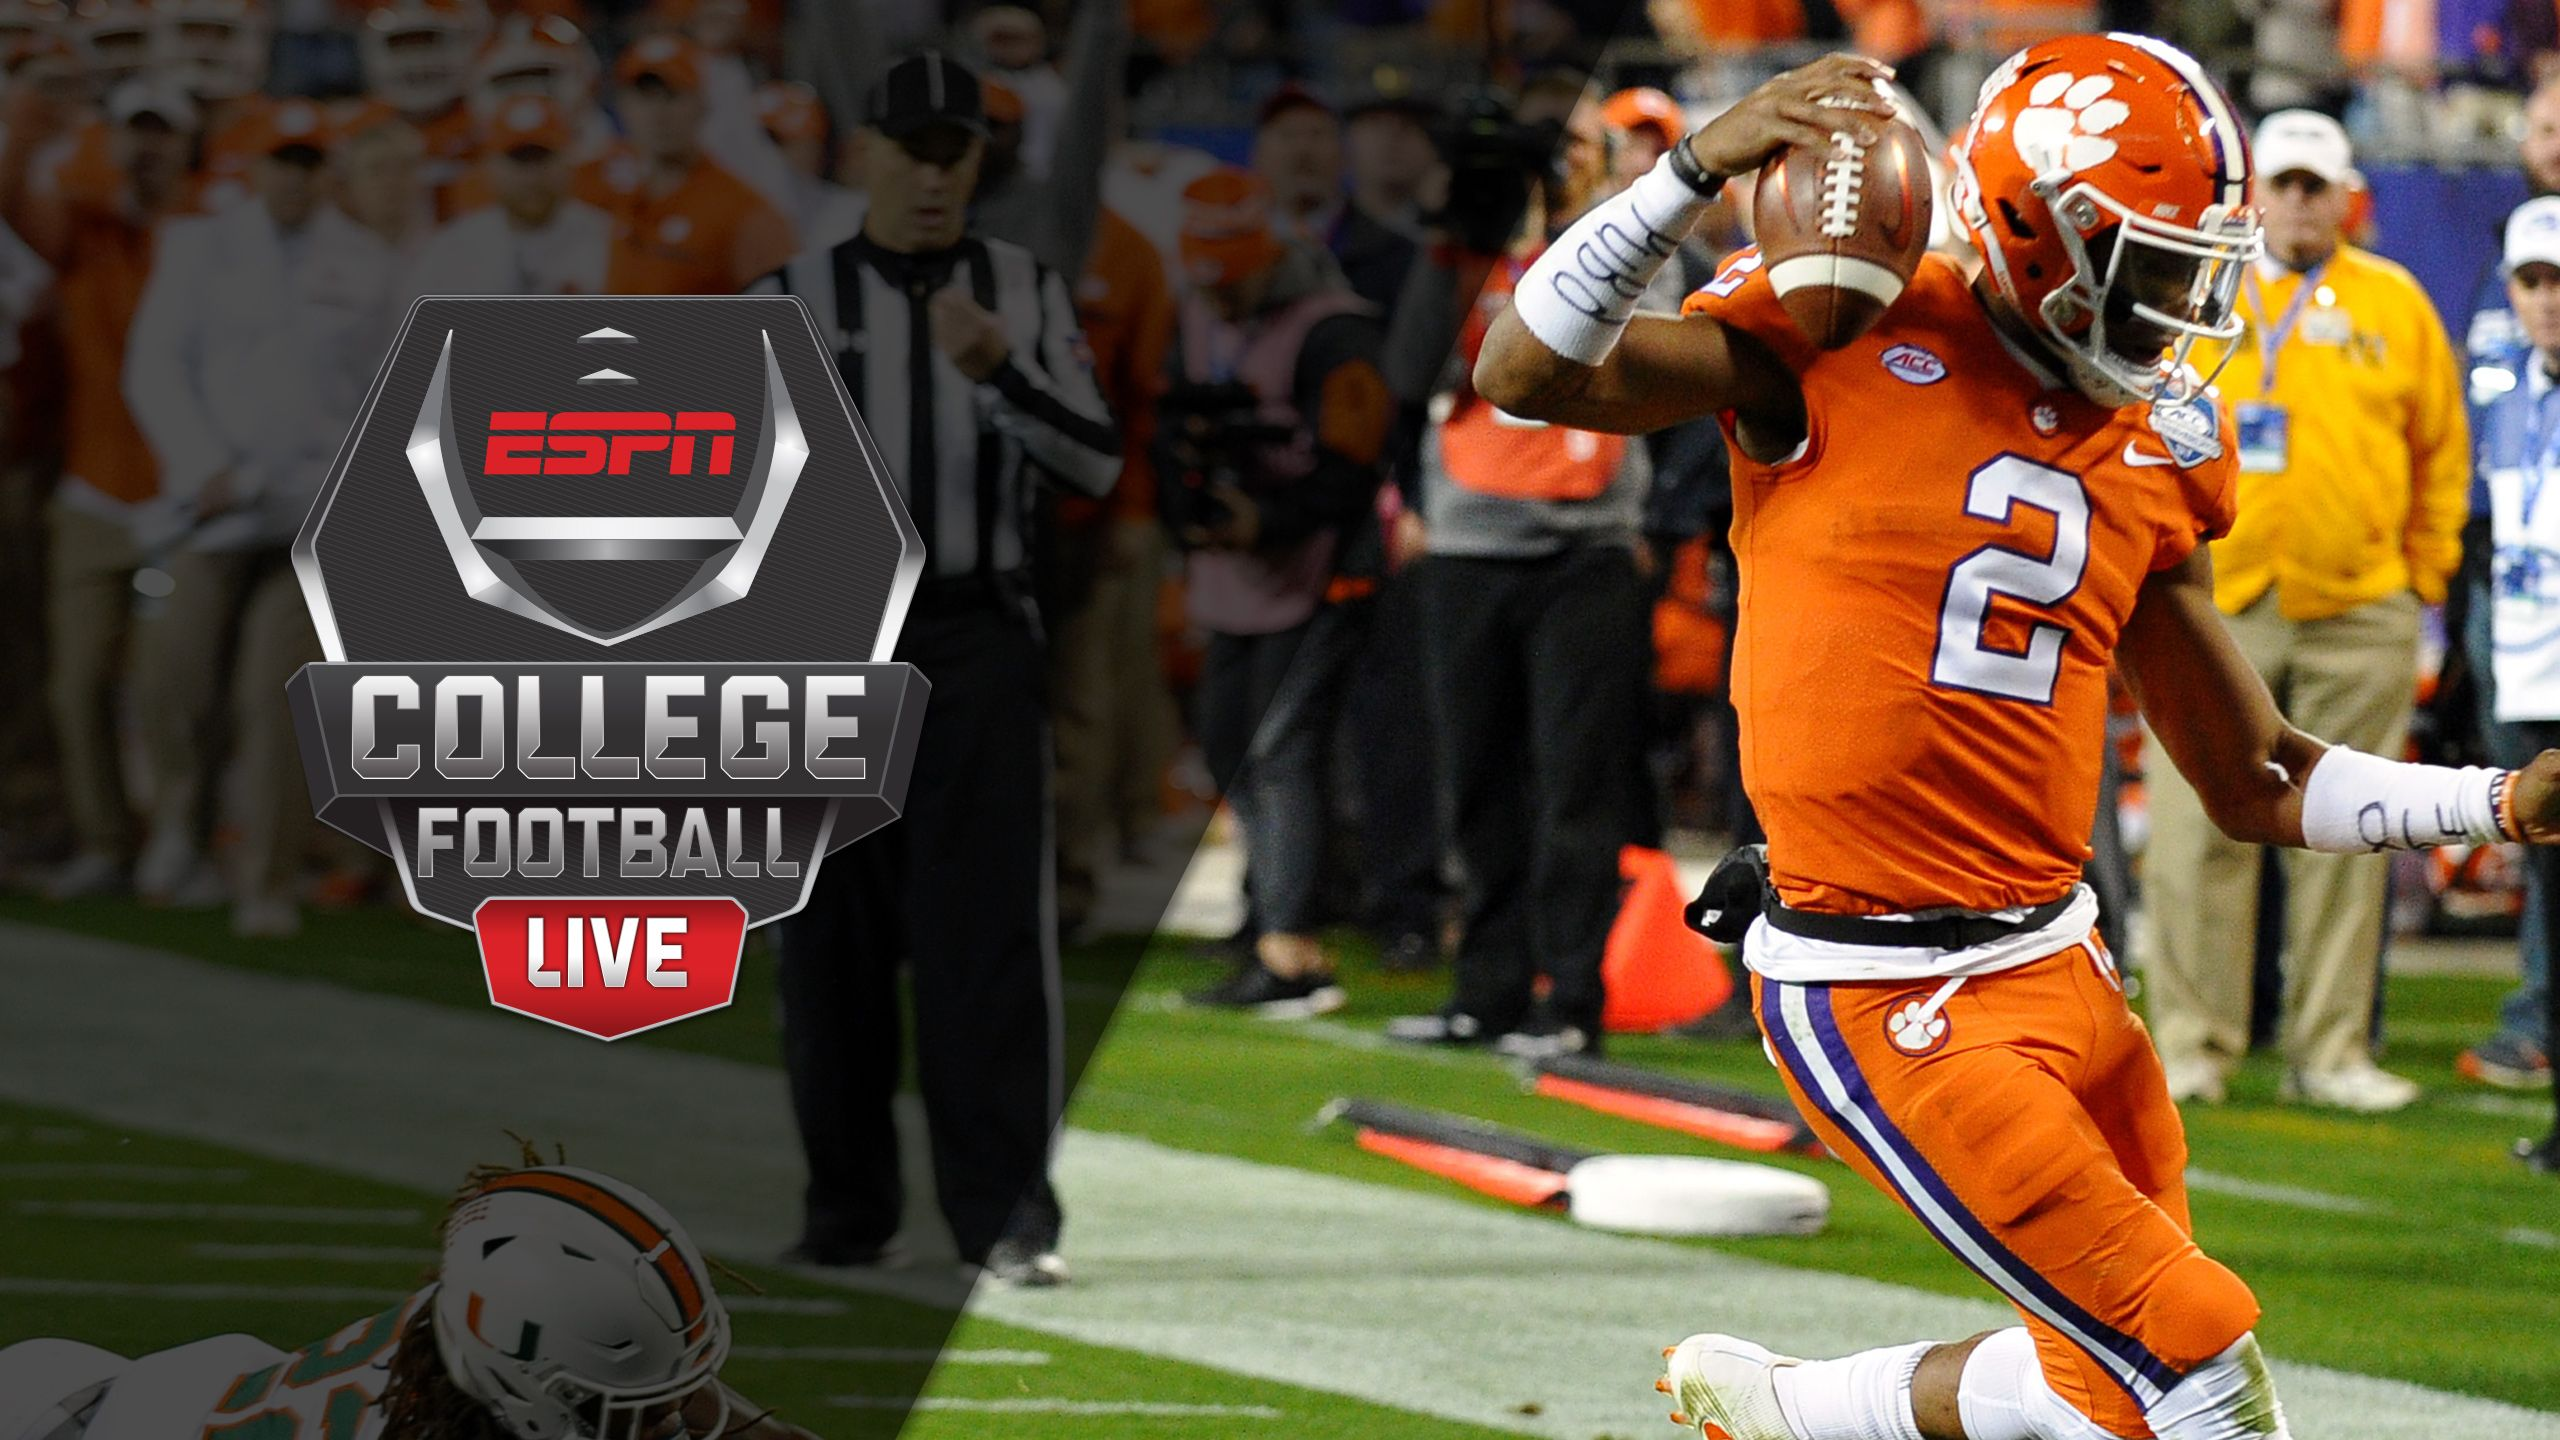 Fri, 12/15 - College Football Live